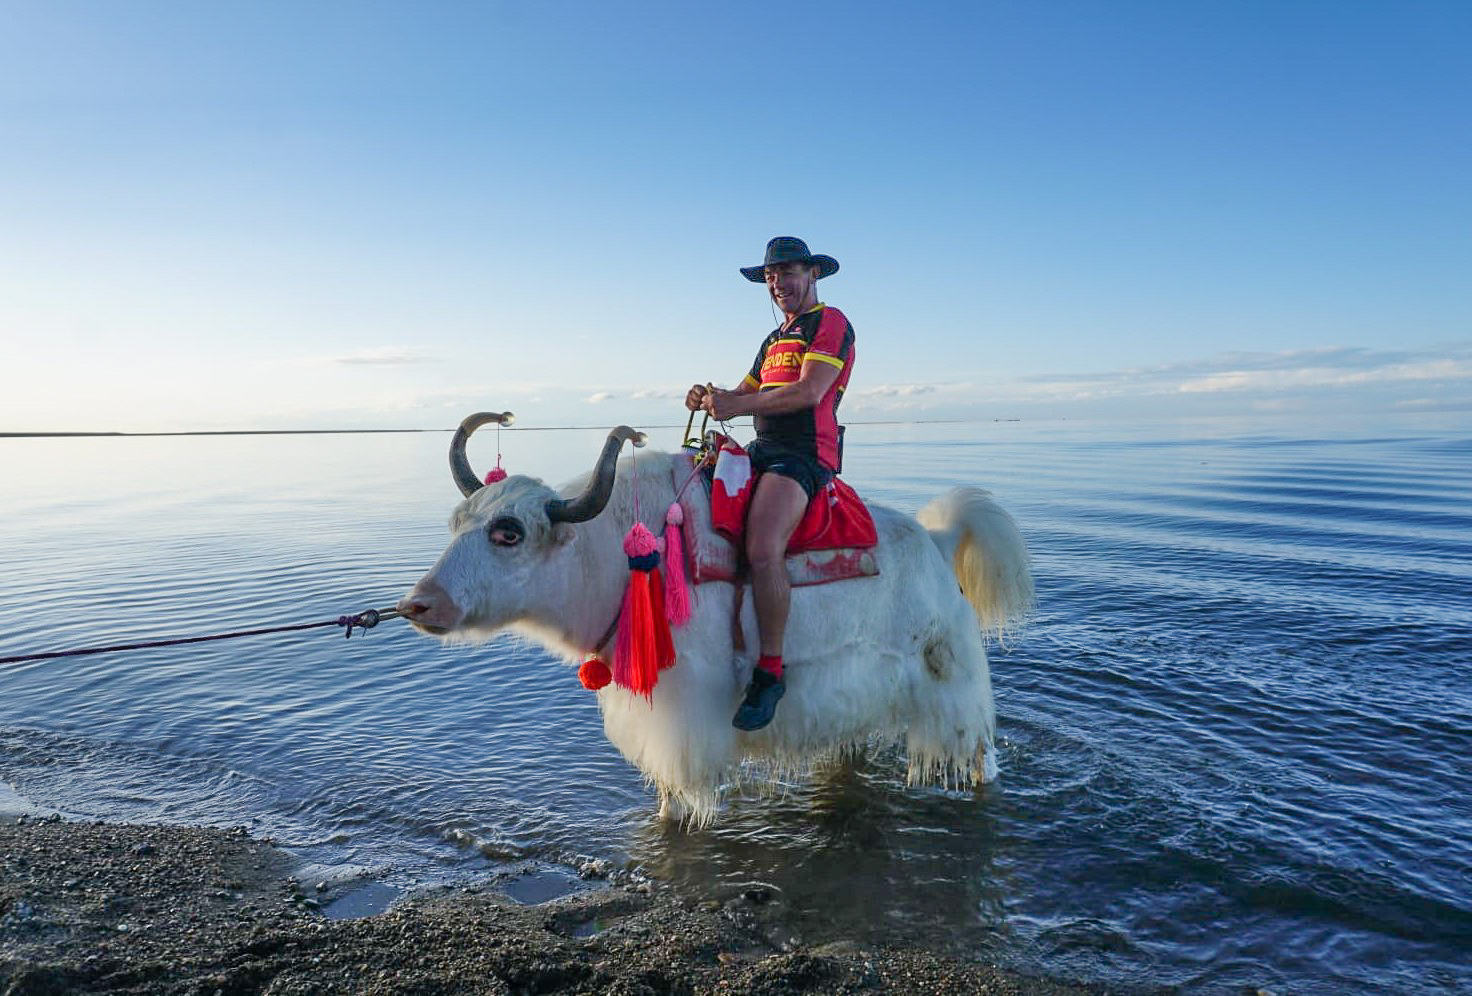 Dale riding a Yak in a lake